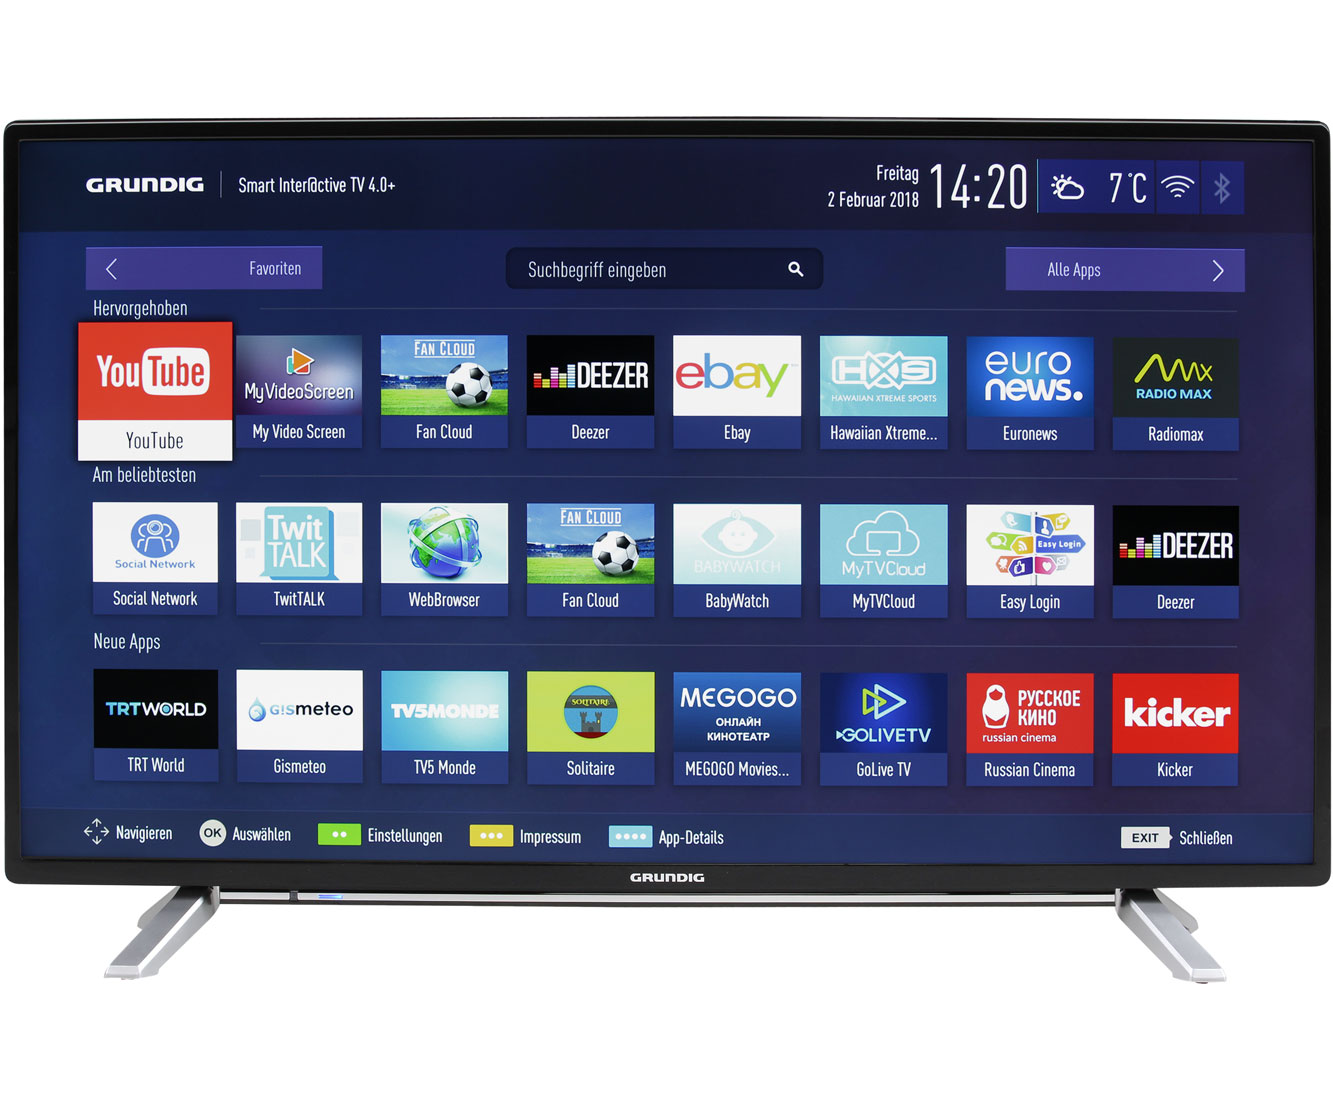 grundig 40 gfb 6728 full hd led fernseher 102 cm 40 zoll schwarz ebay. Black Bedroom Furniture Sets. Home Design Ideas